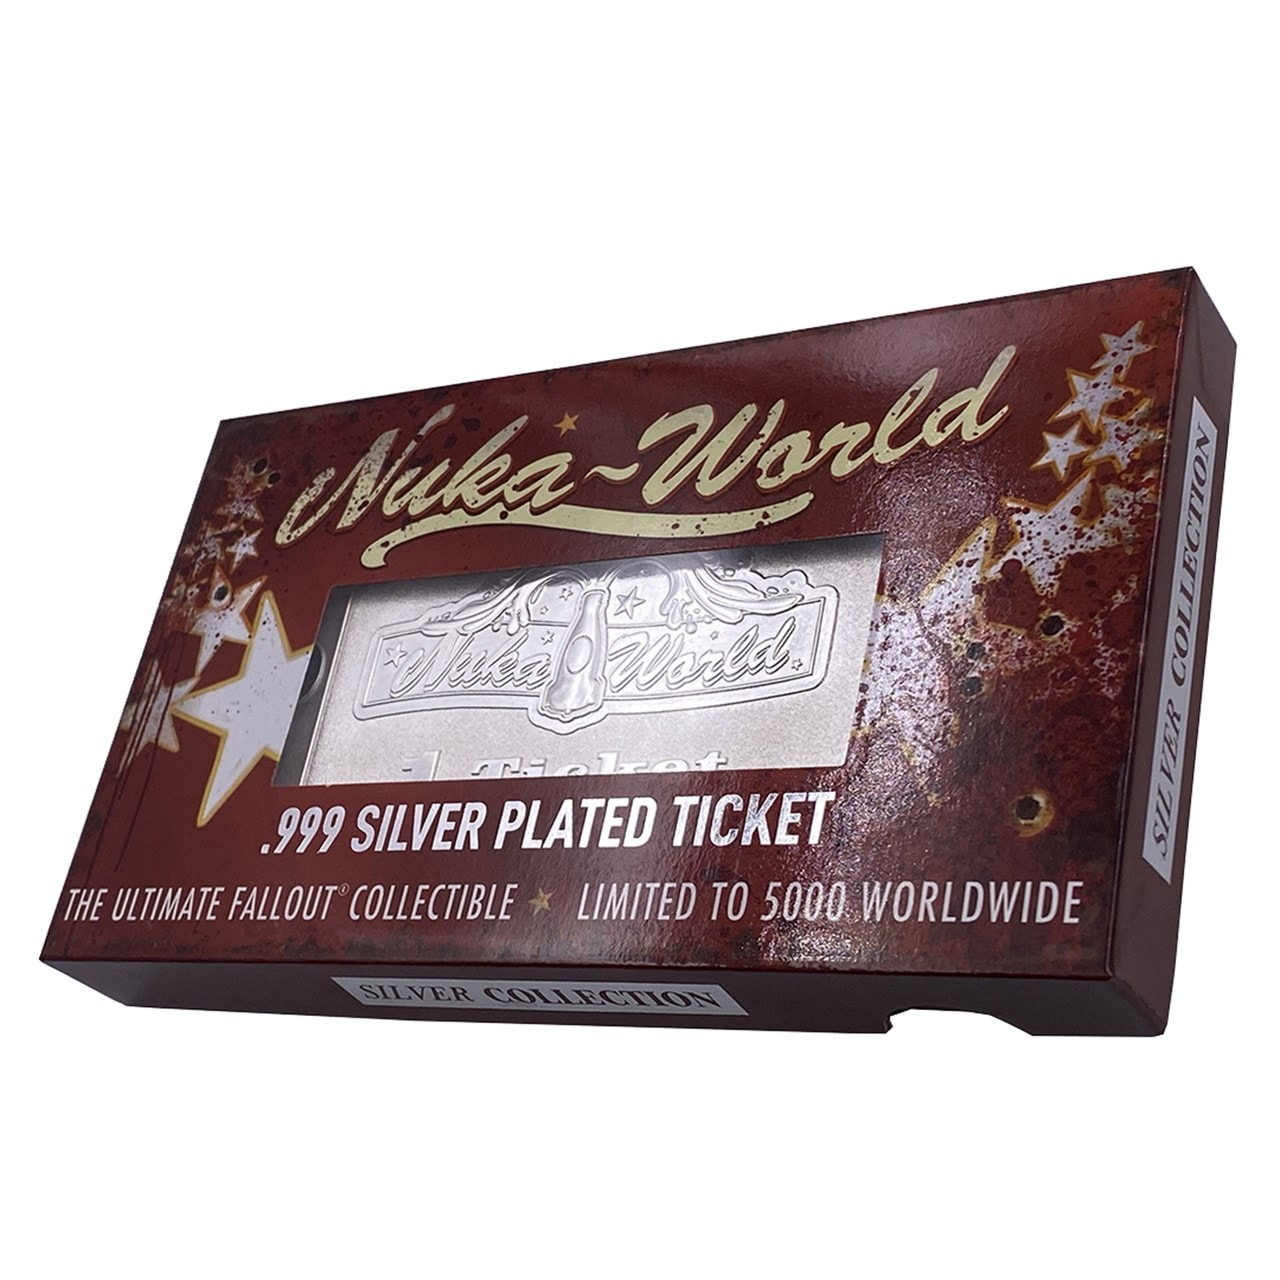 Fallout: Nuka World: Silver Plated Ticket Metal Replica (online only) - 2